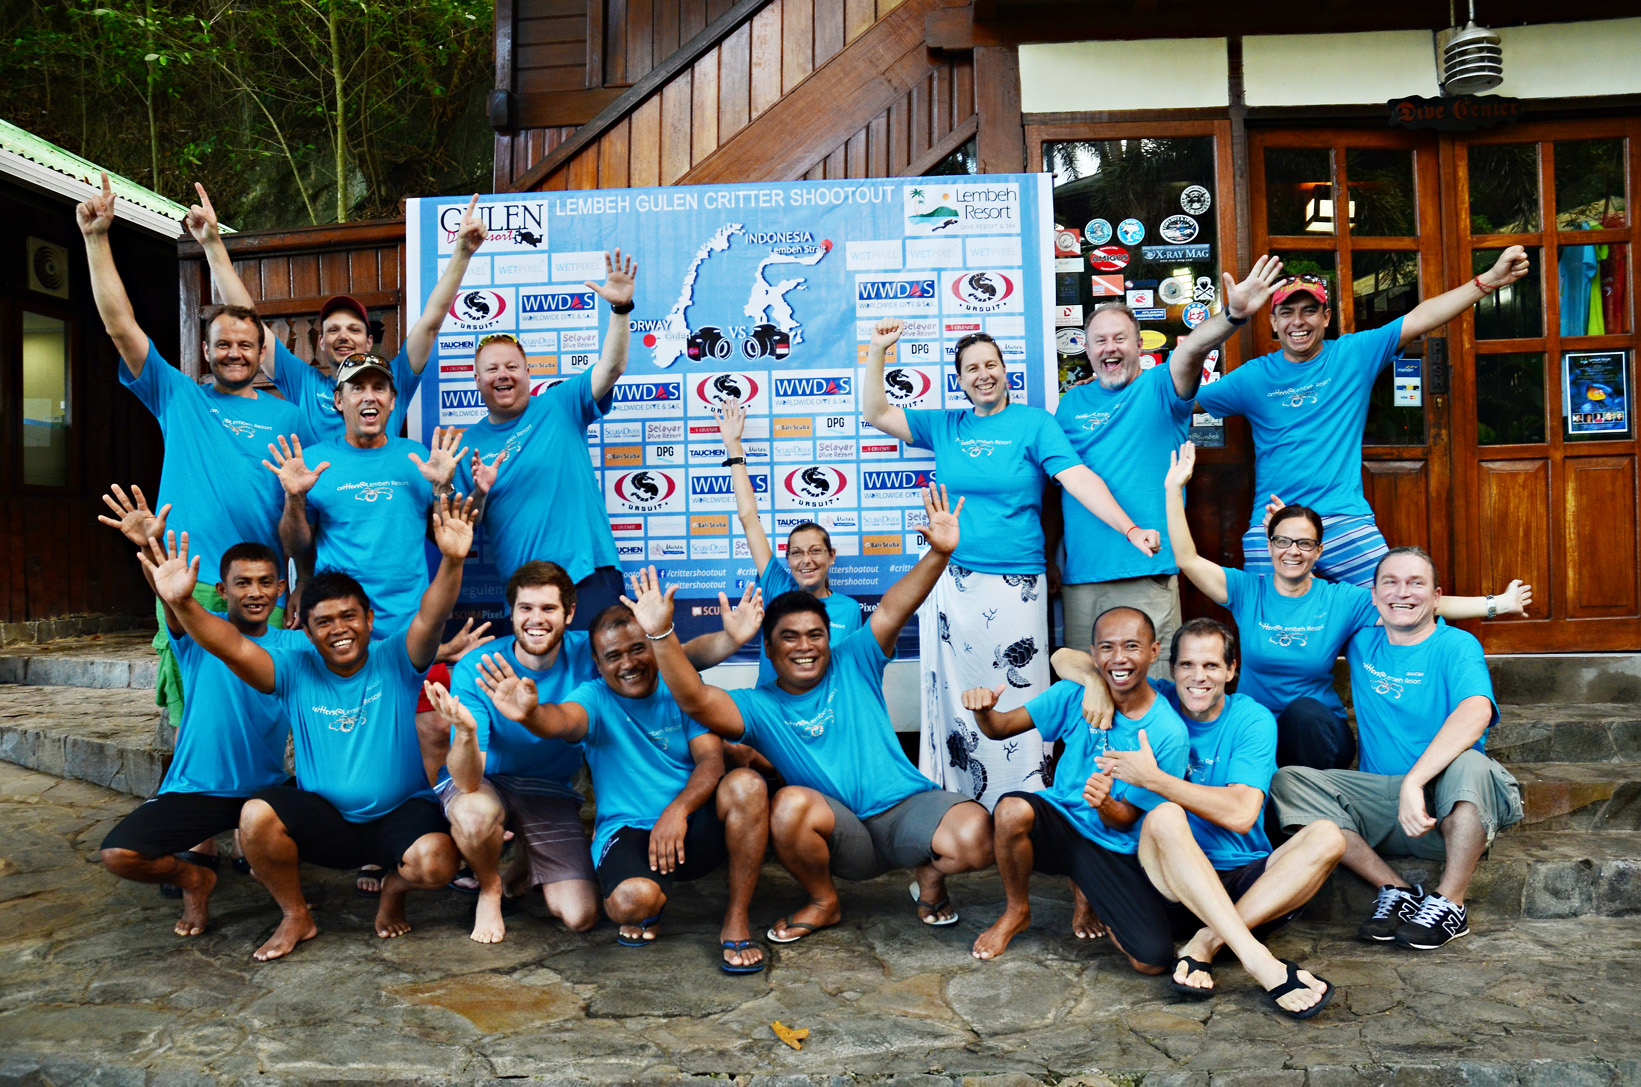 Welcome to the Lembeh Gulen Critter Shootout 2016